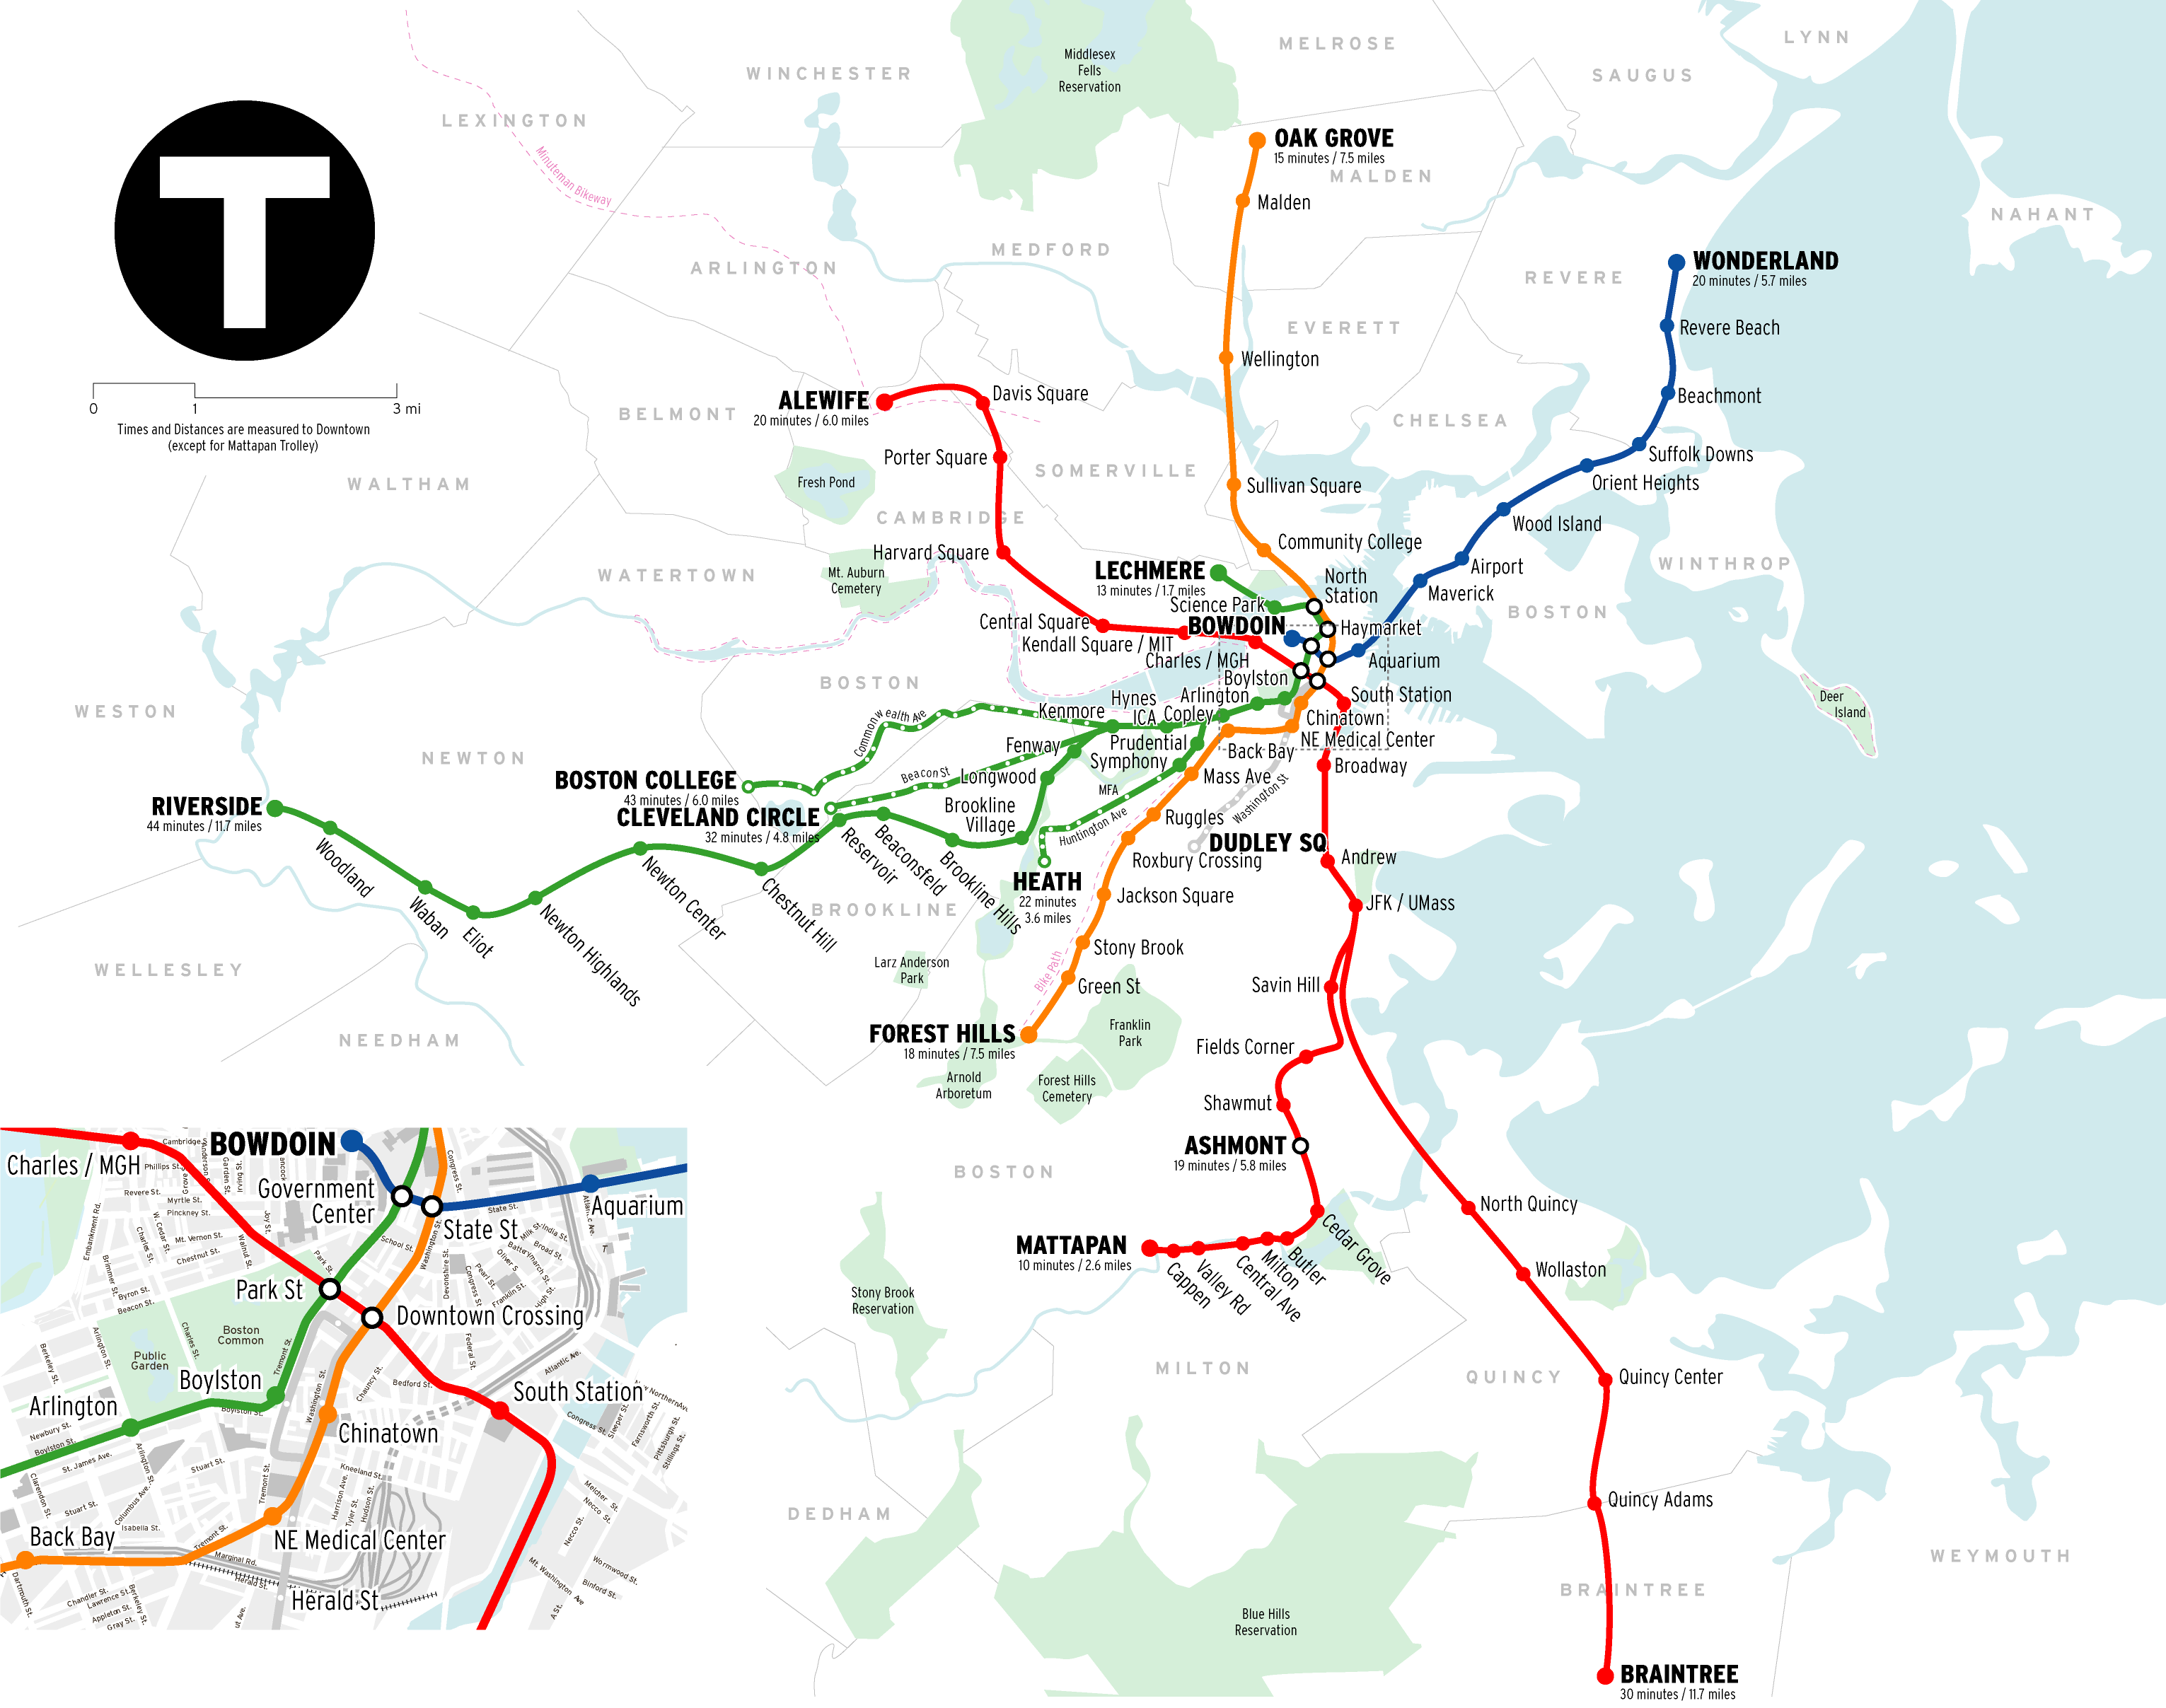 Map Of Boston Subway File:MBTA Boston subway map.png   Wikimedia Commons